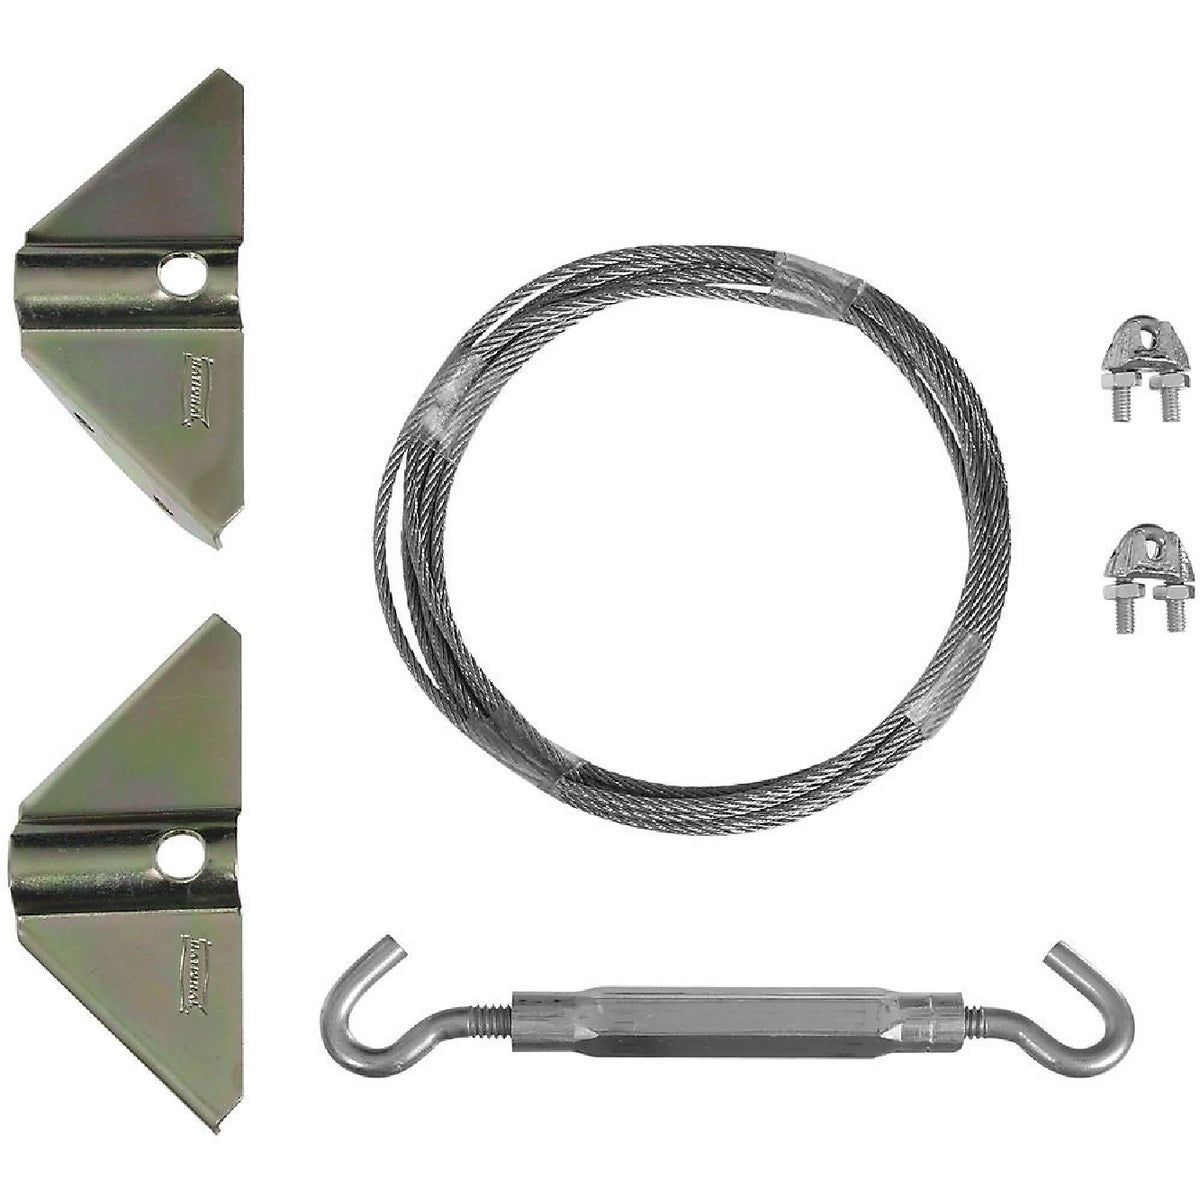 ANTI-SAG GATE KIT ZN - N192-211 by National Mfg Co